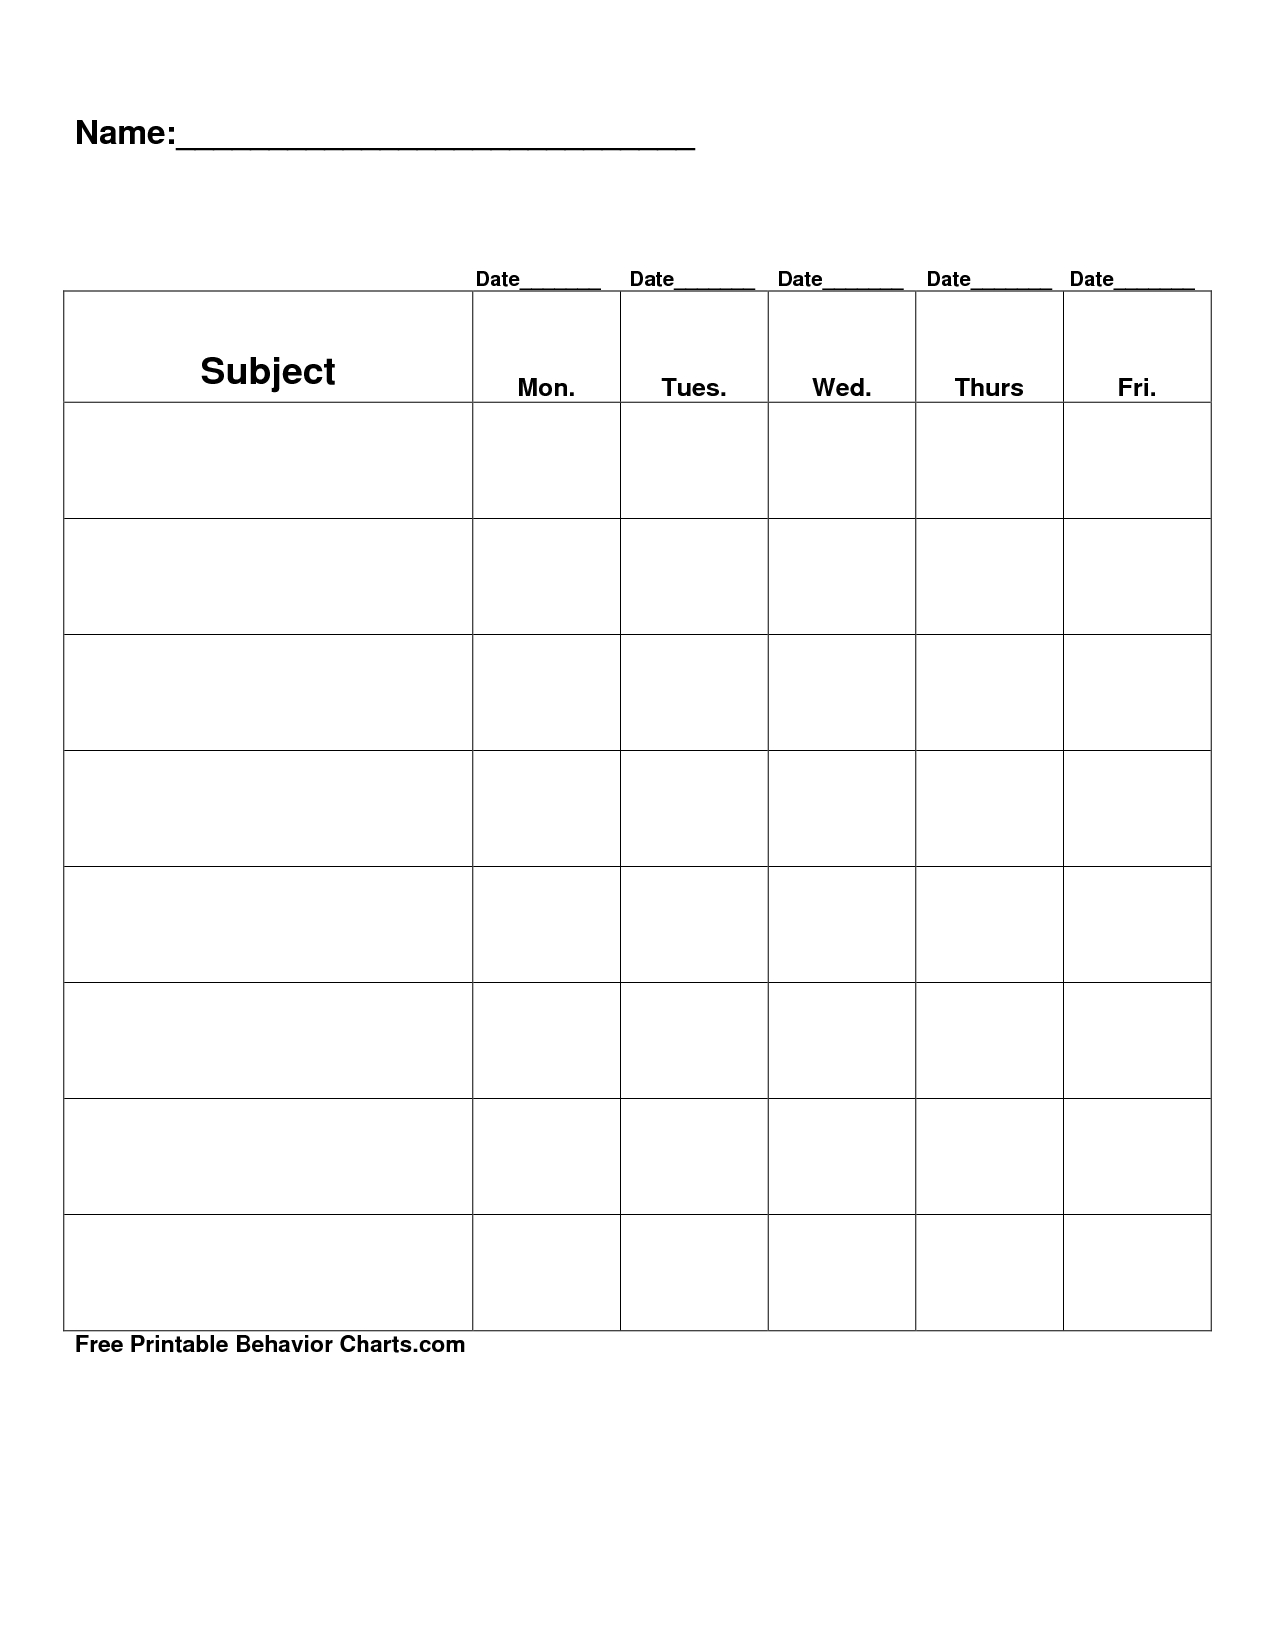 Docstoc Is Closed | Reward Chart Template, Free Printable